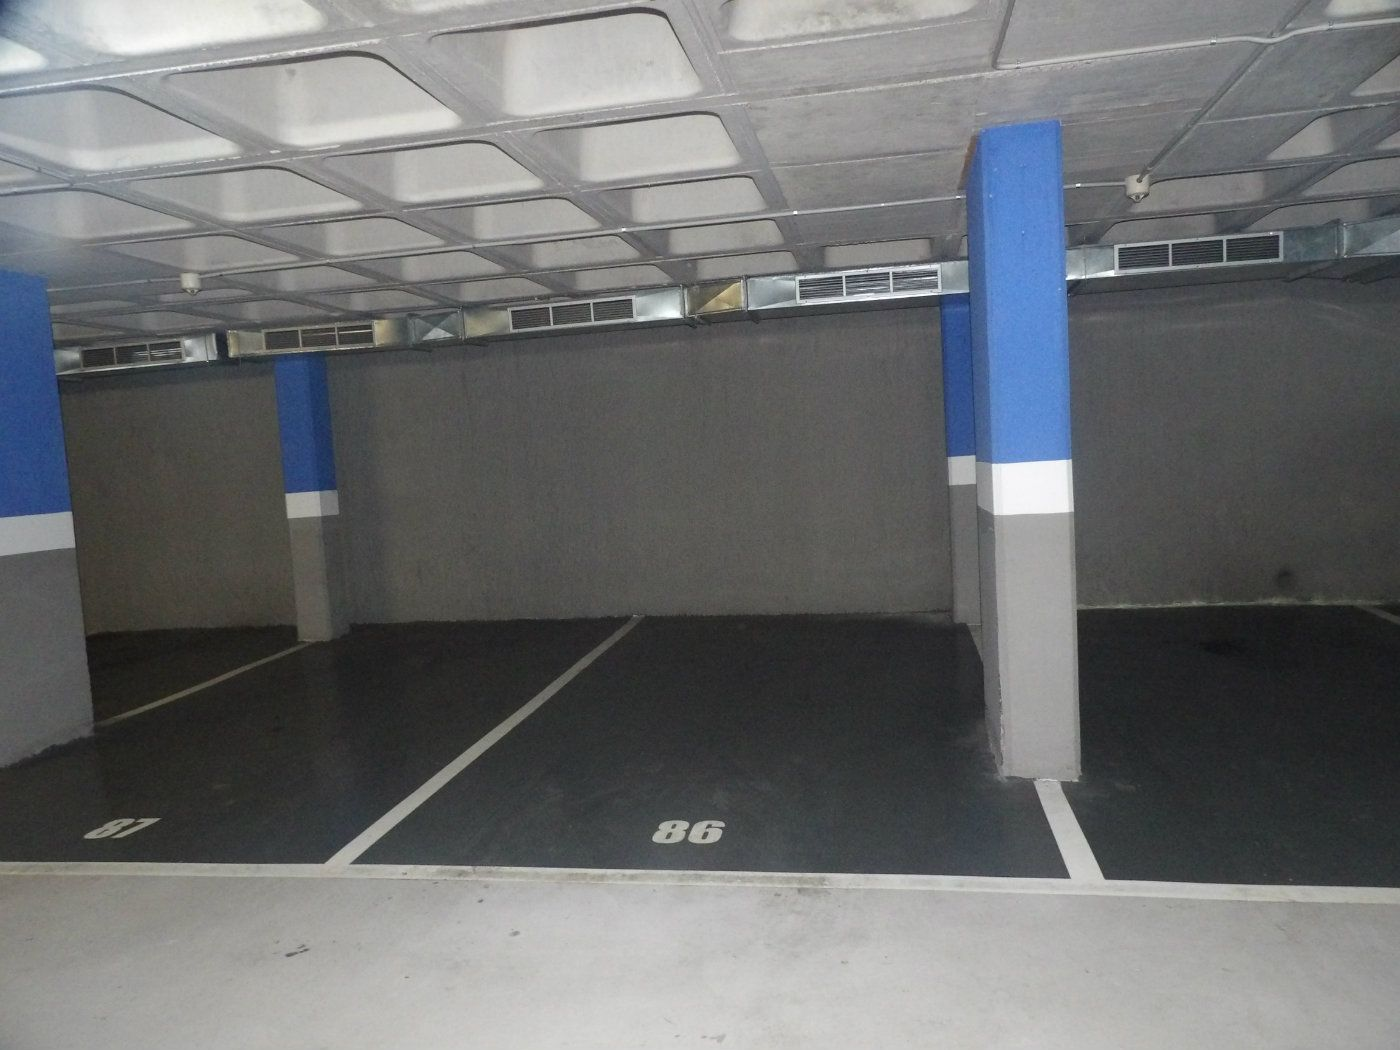 Alquiler Parking coche  Carrer pare sallares. Parking al centre